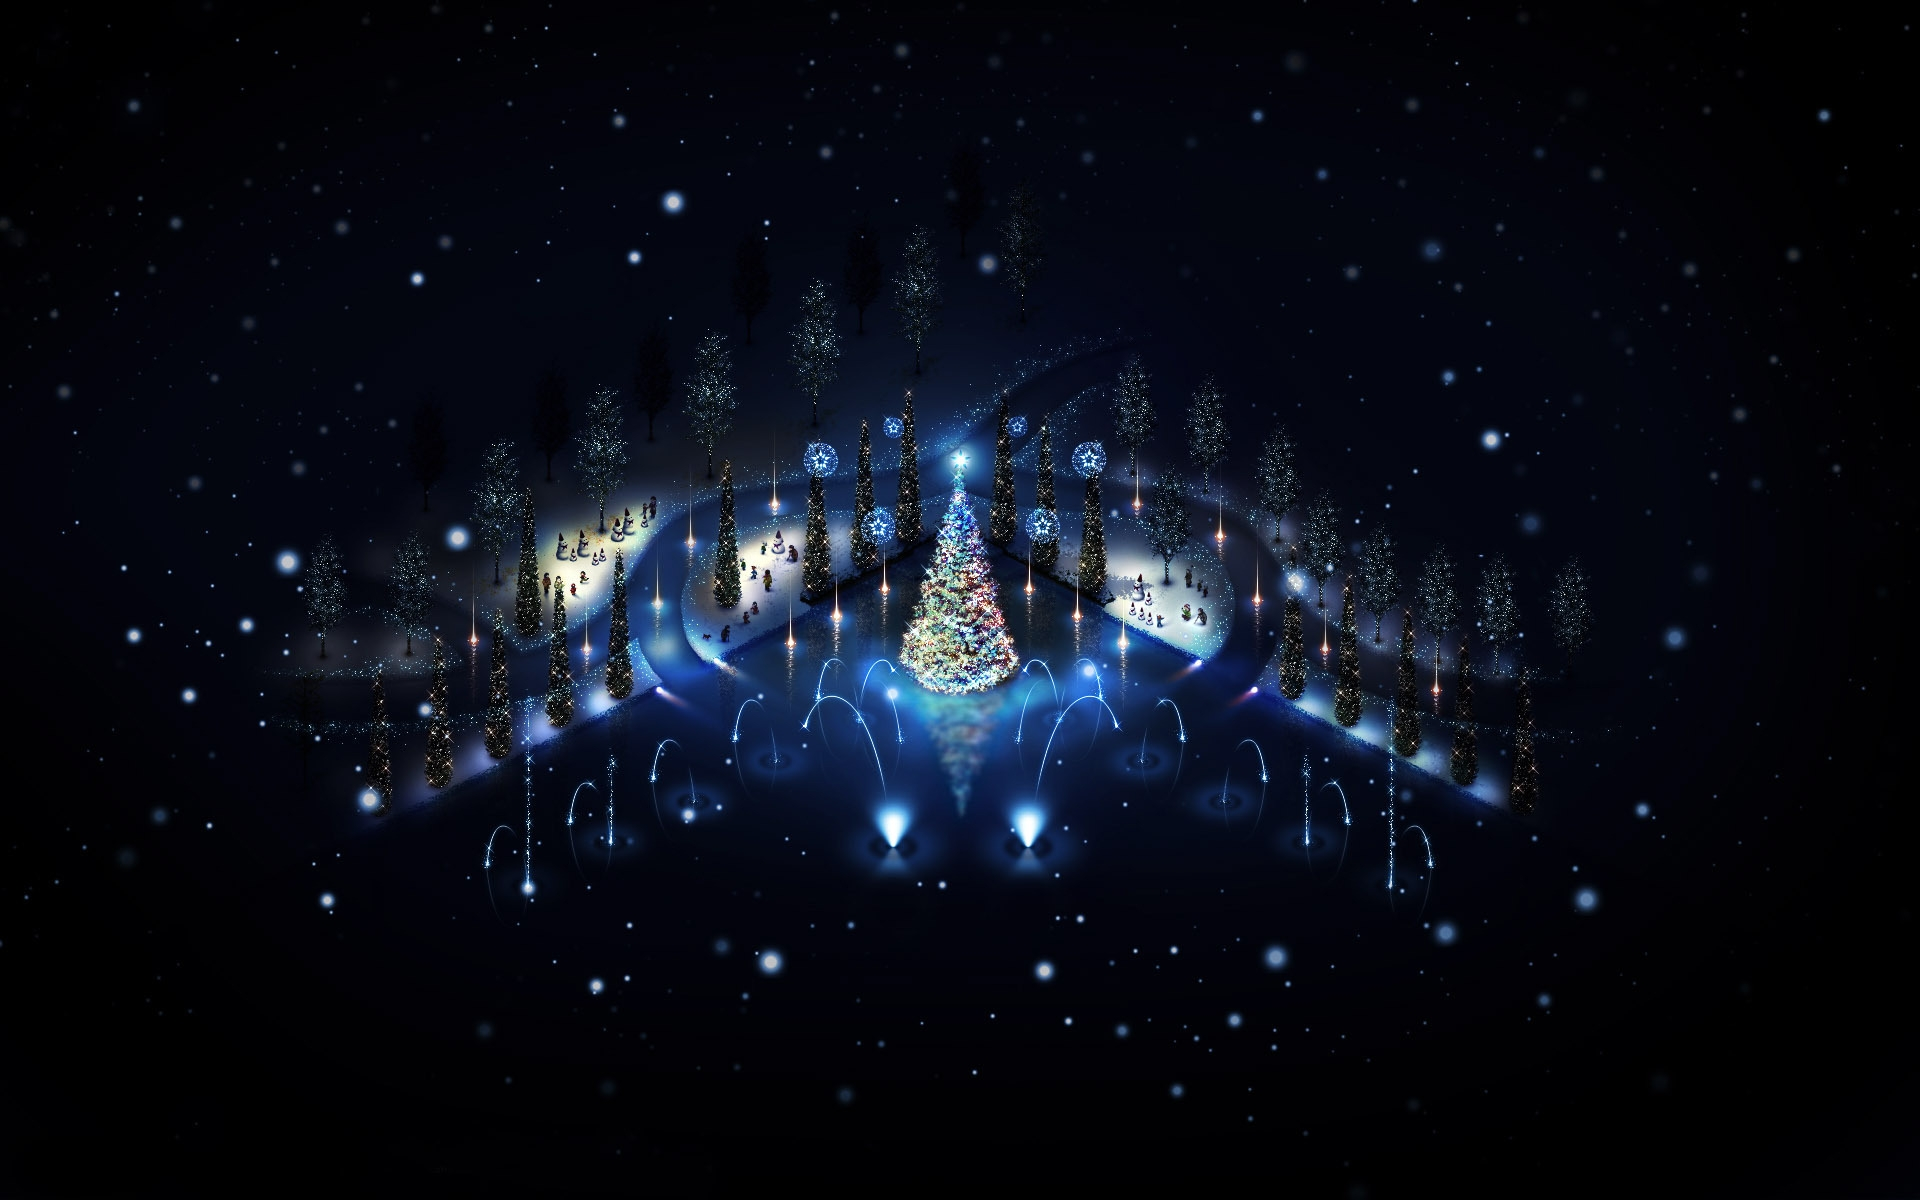 Lovely Christmas Trees Lighting for 1920 x 1200 widescreen resolution